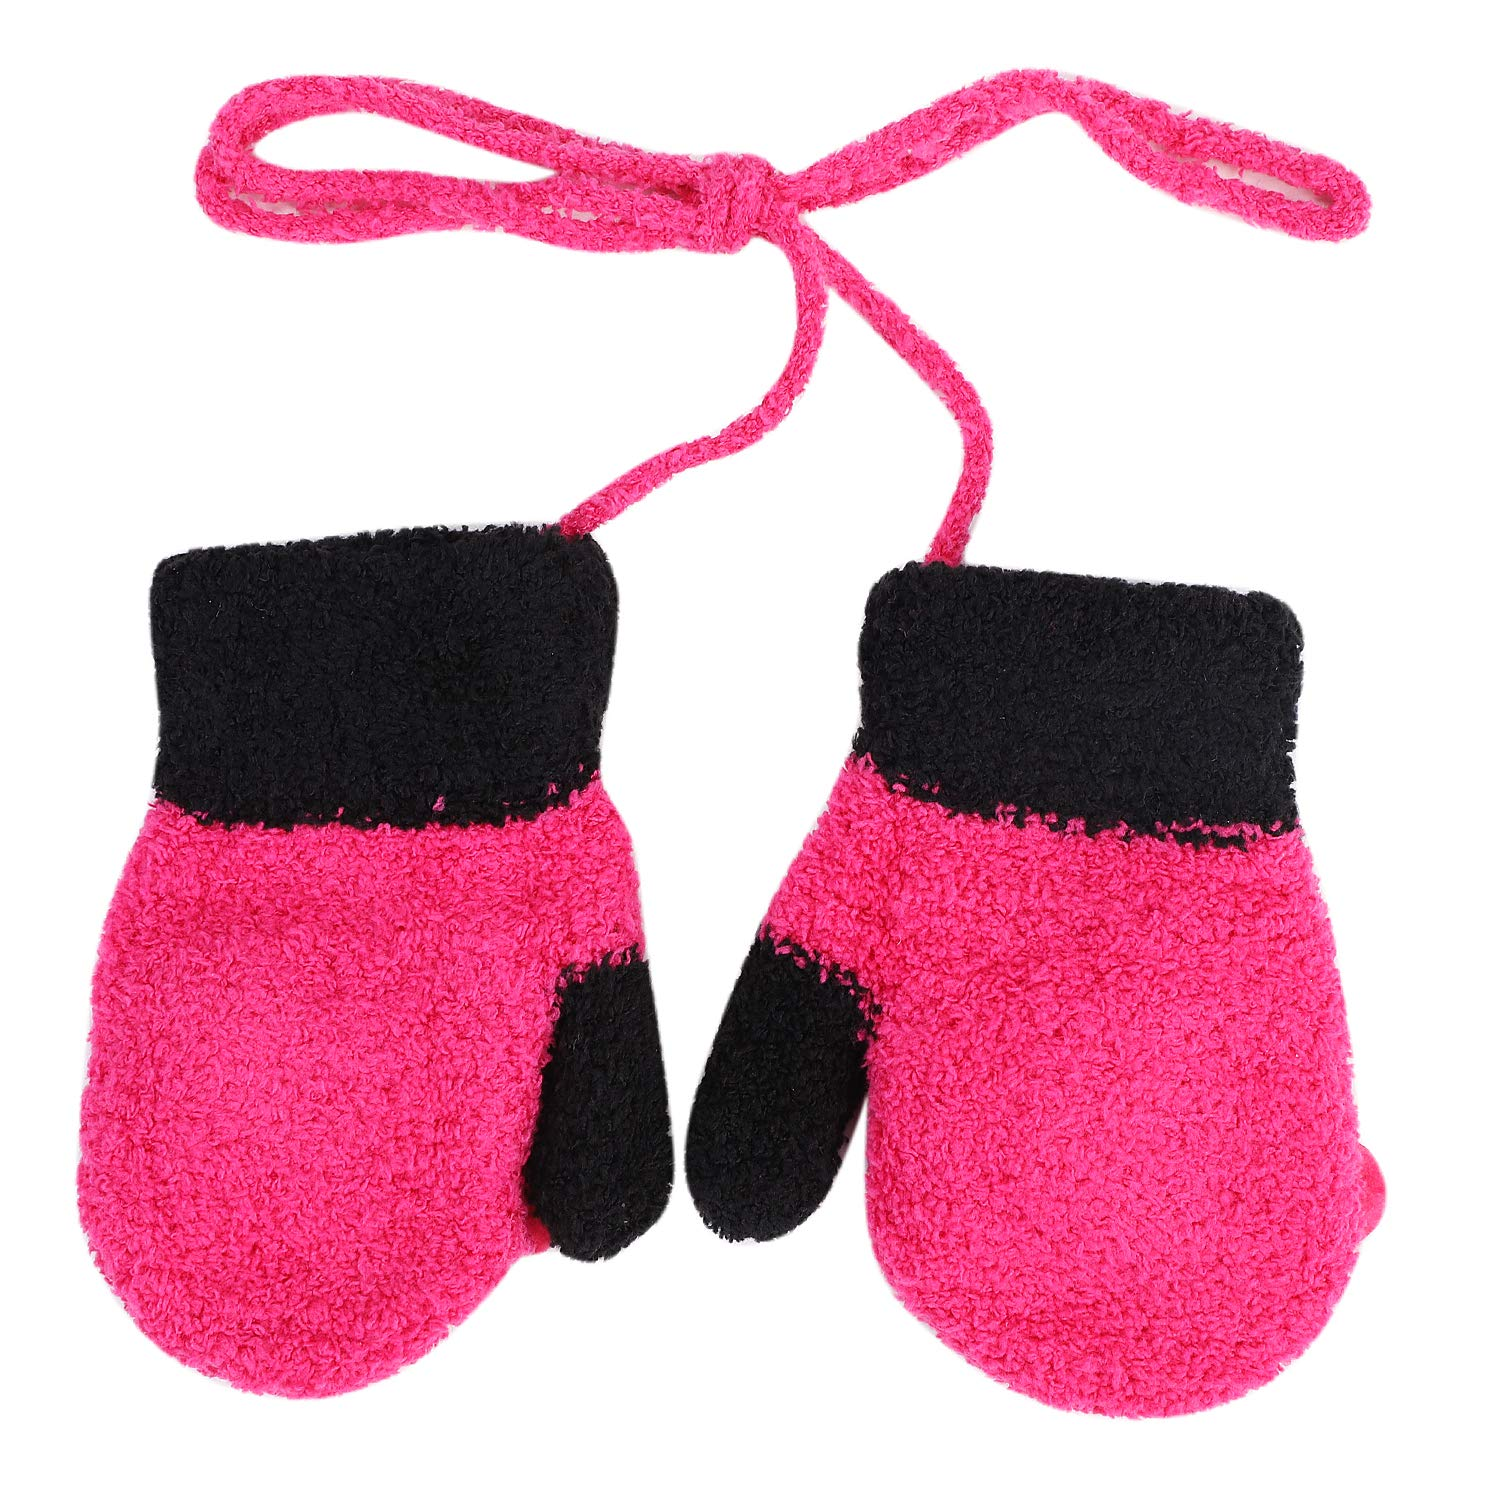 Qchomee Baby Cute Cartoon Gloves Thicken Winter Warm With String Gloves Soft Fleece Liner Mittens Hanging Neck Full Finger Gloves Christmas Birthday Gifts for Baby Girls Boys 1-3 Years Old